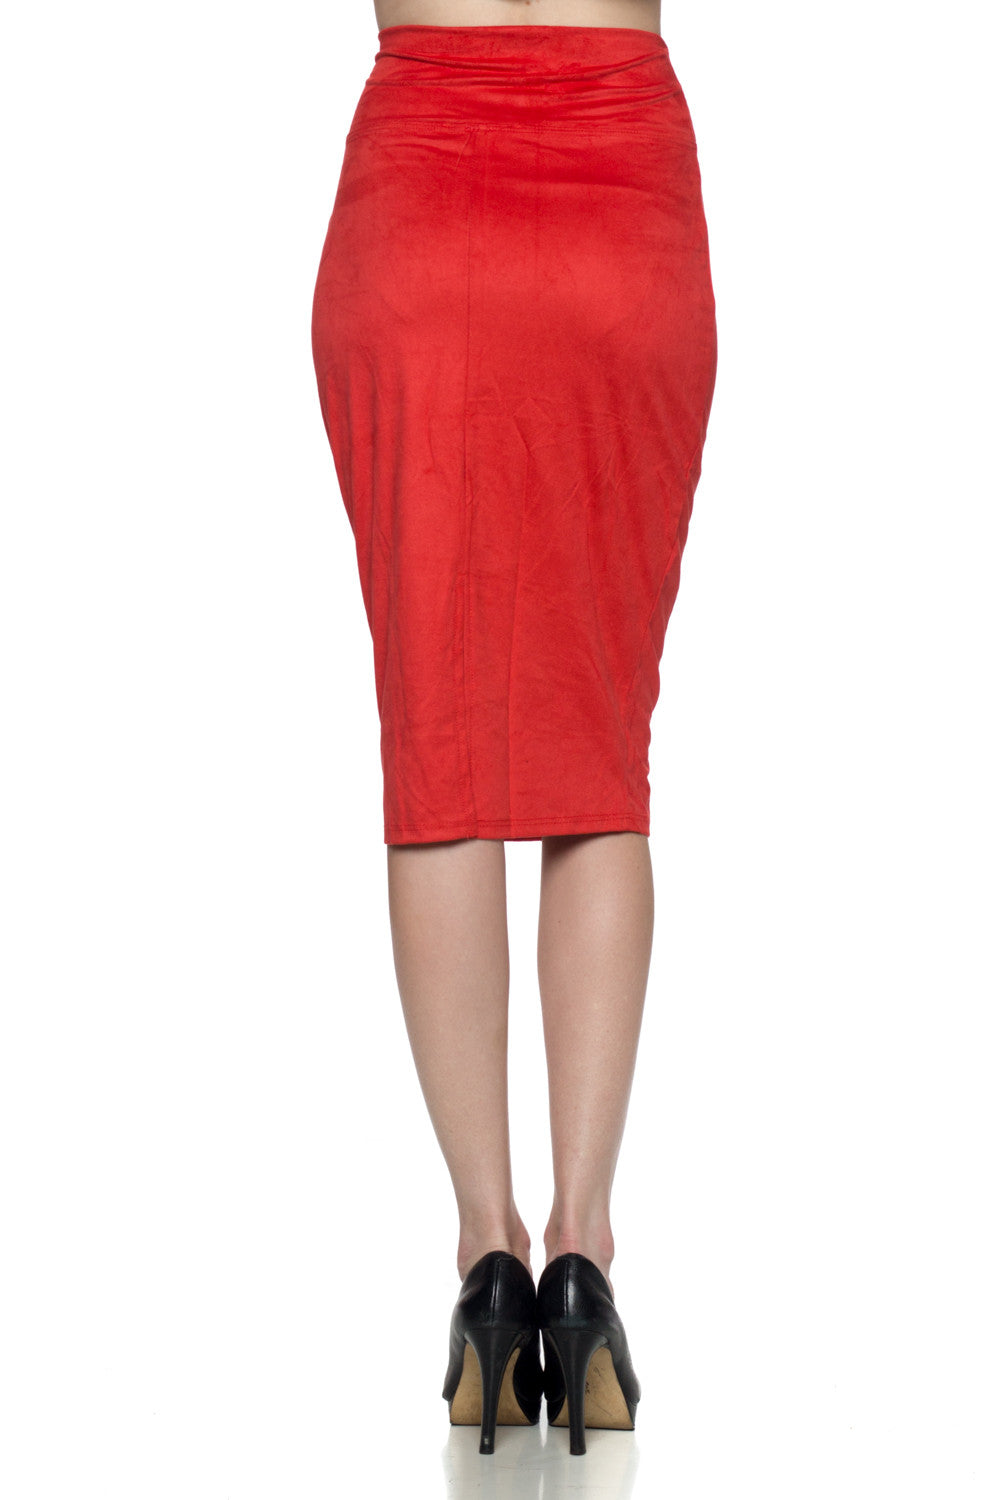 Women's Red Suede Pencil Skirt